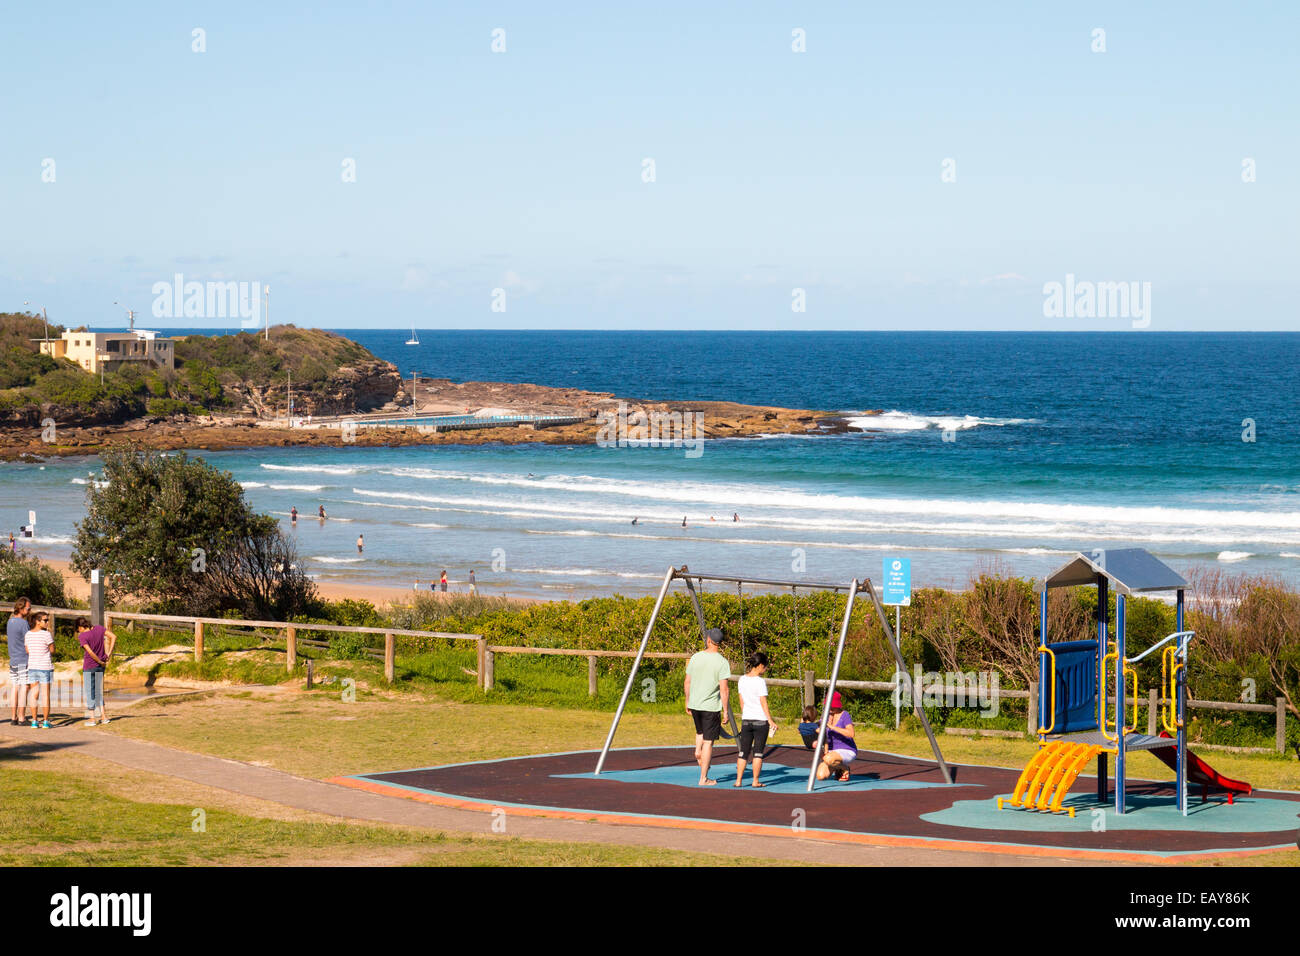 Freshwater a coastal suburb of Sydney on the northern beaches,new south wales Australia - Stock Image